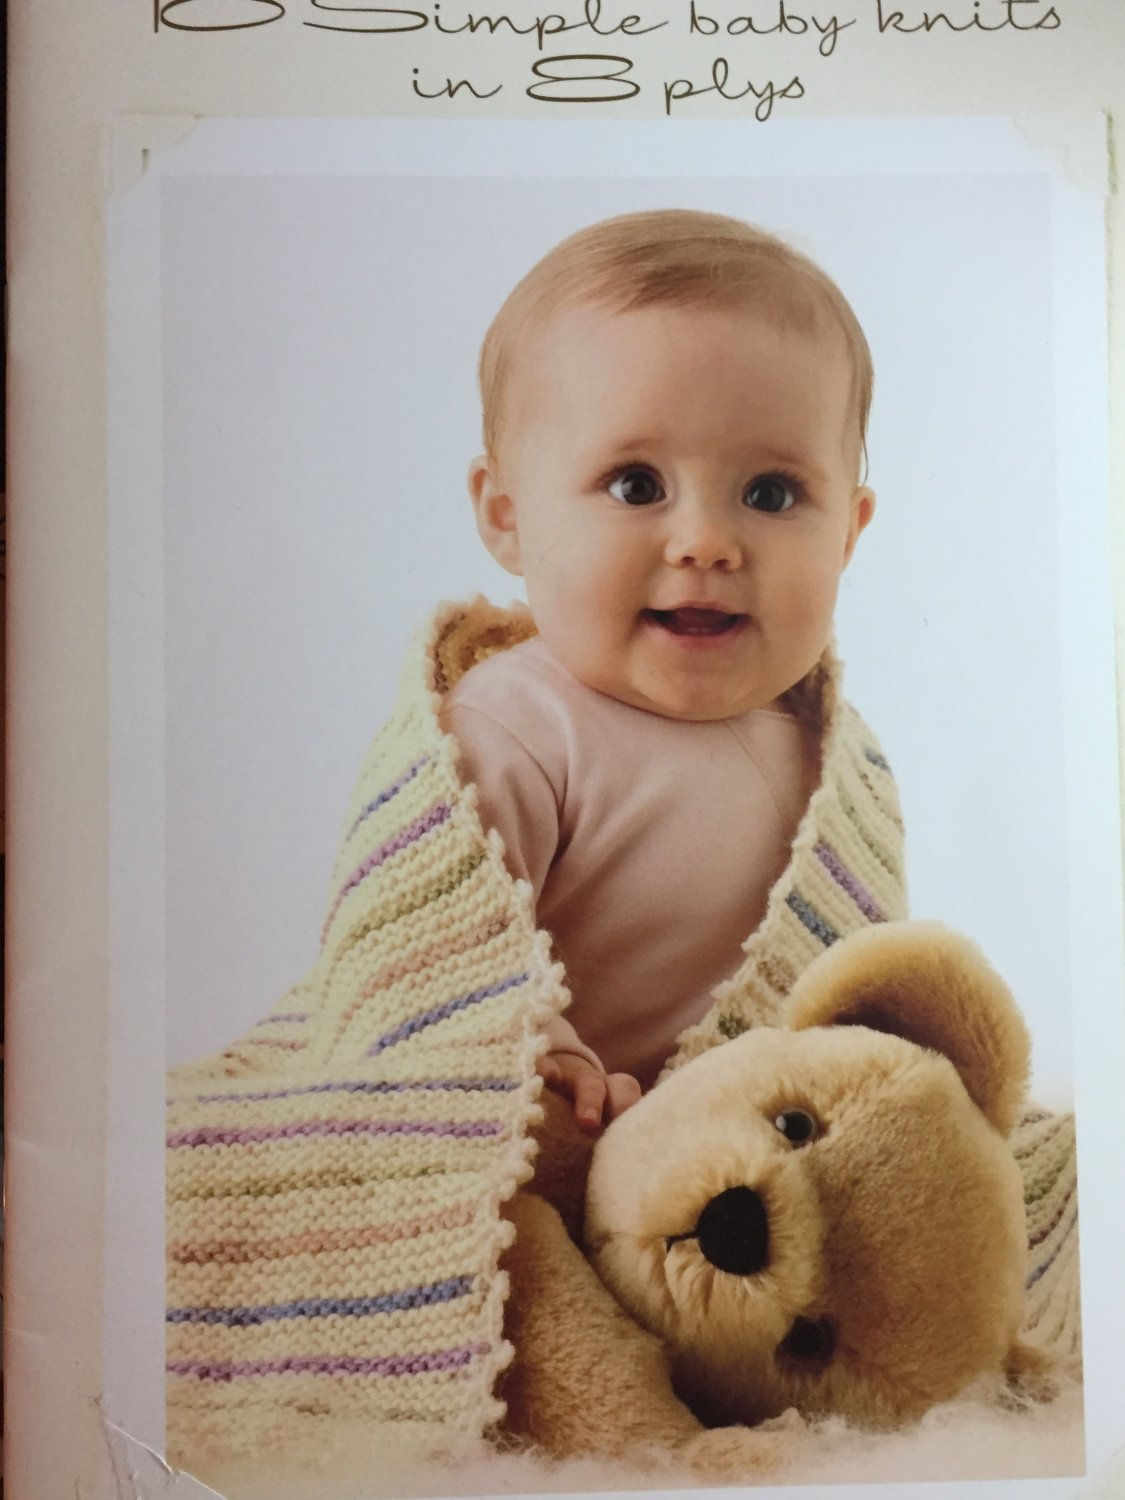 10 Simple Baby Knits in 8 plys Cleckheaton Yarns book no. 948